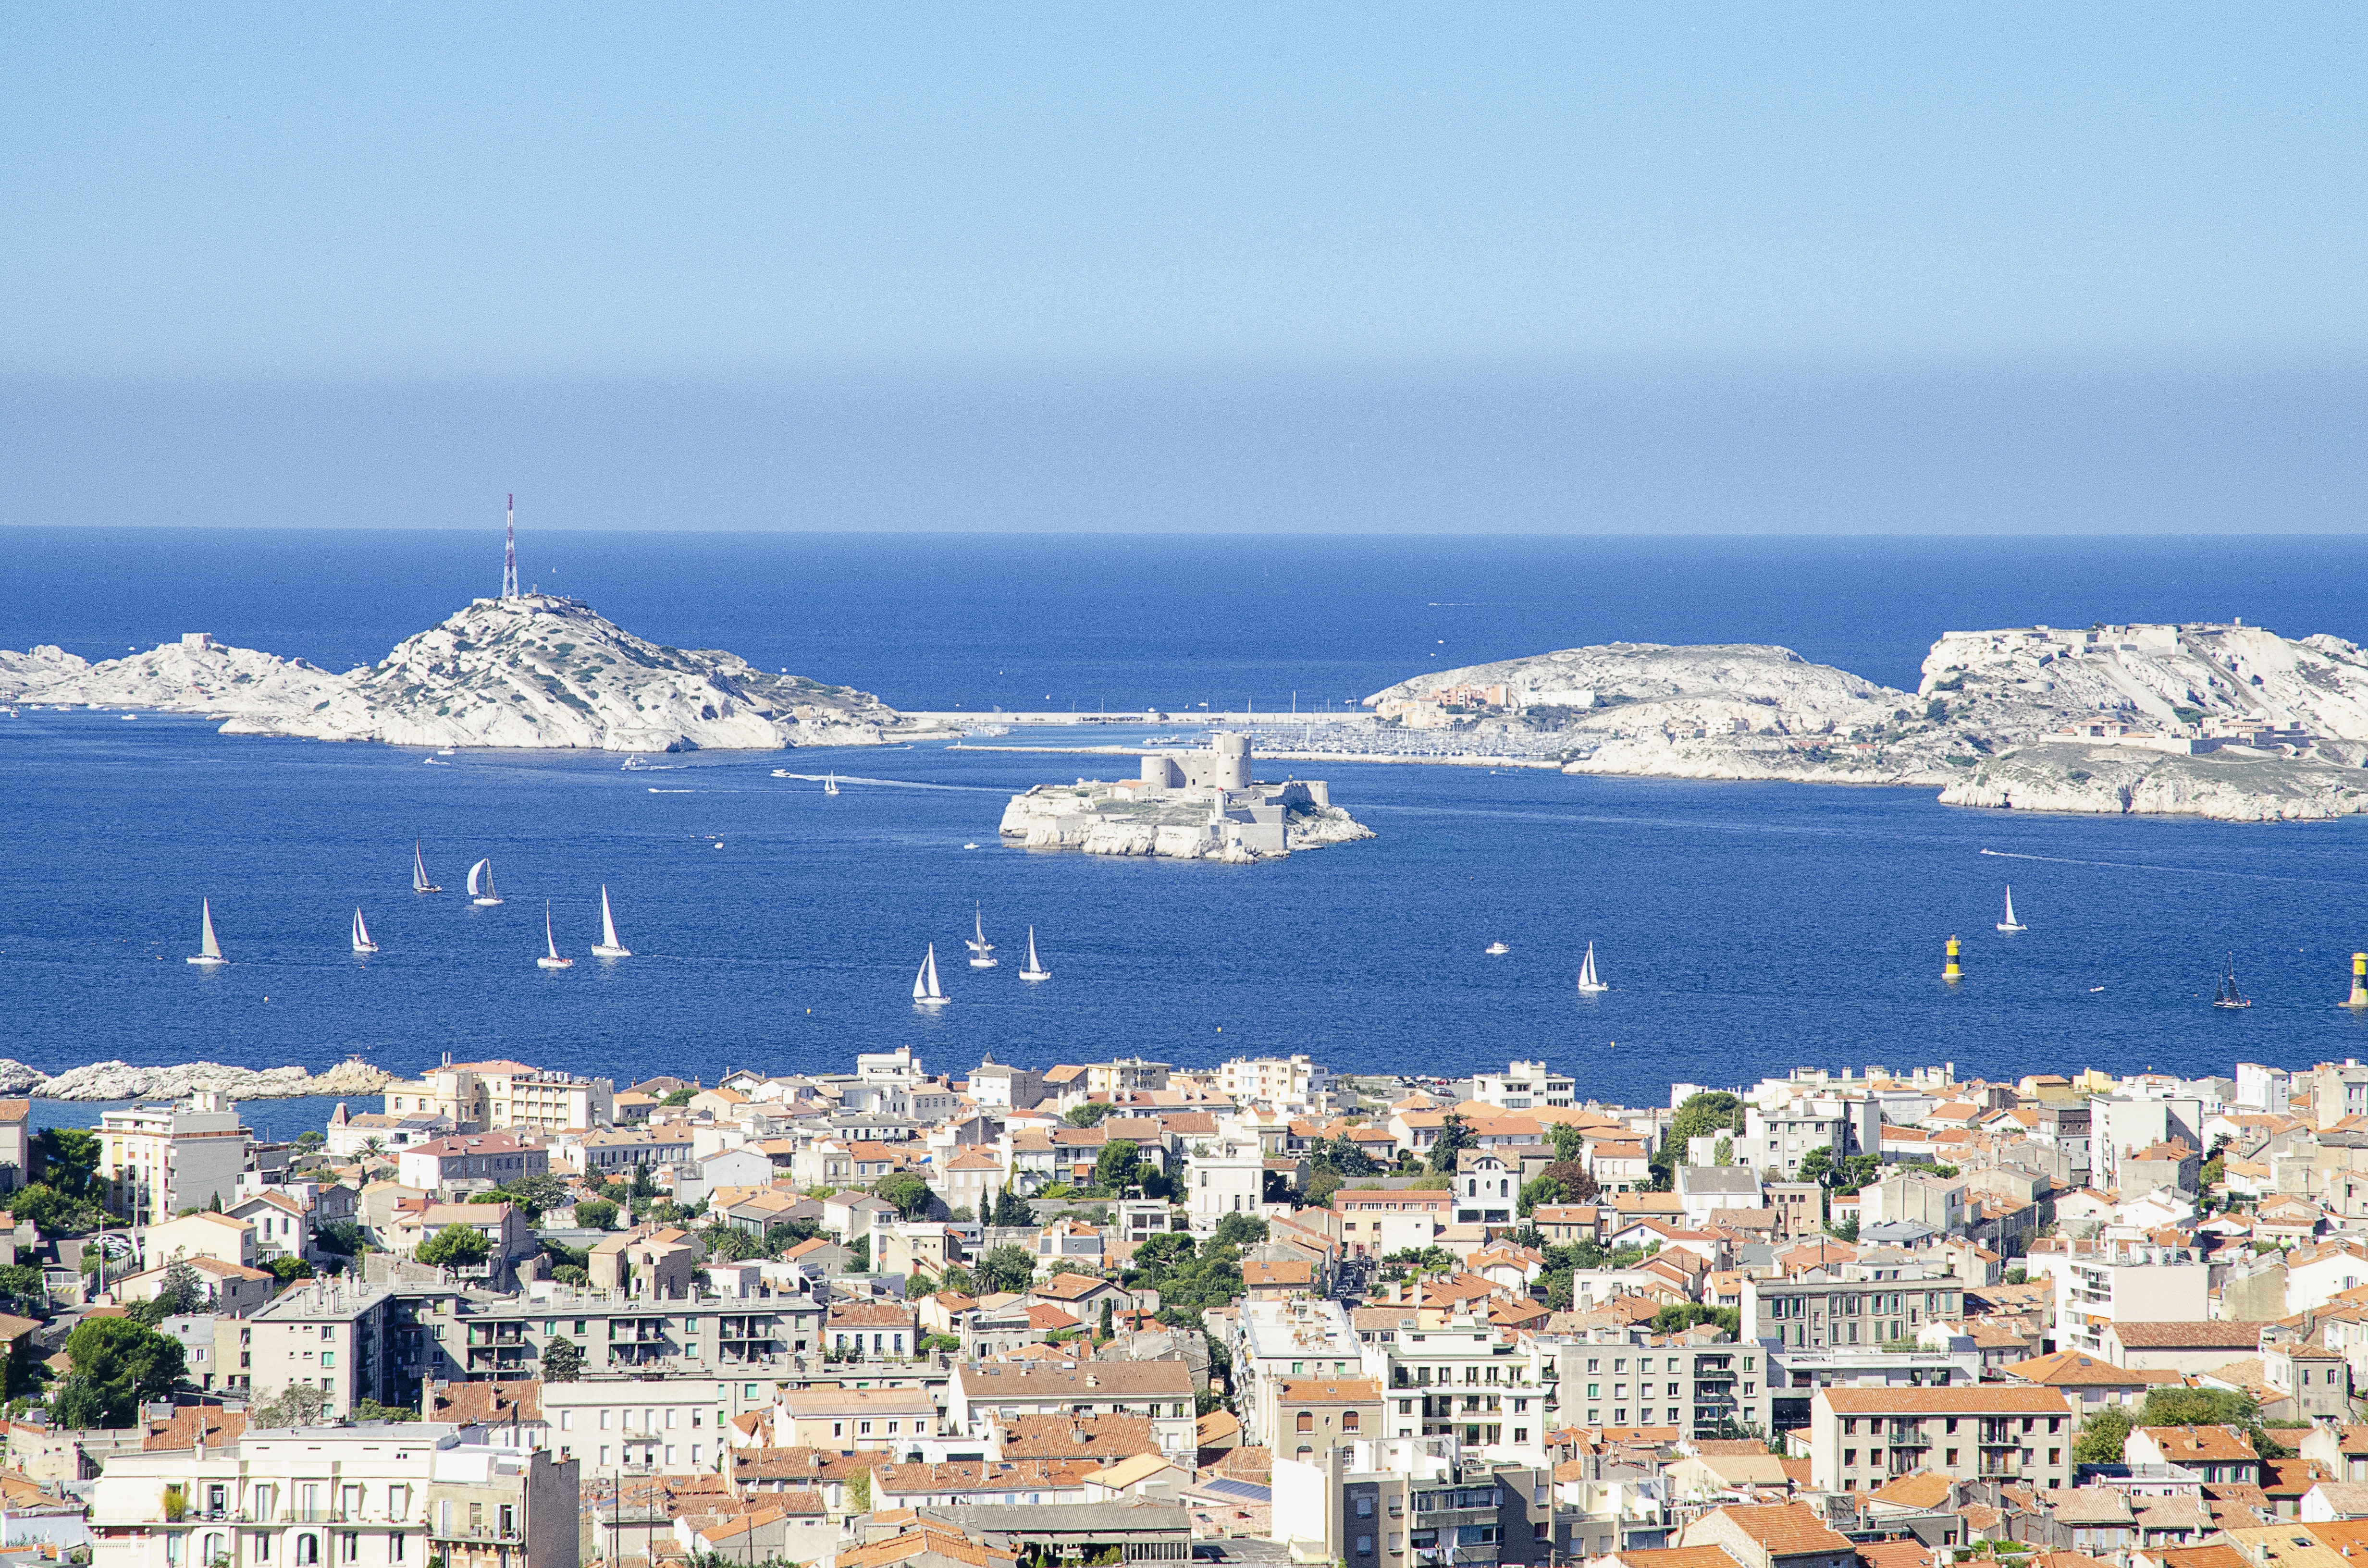 Panoramic view of Chateau d'If, Marseille